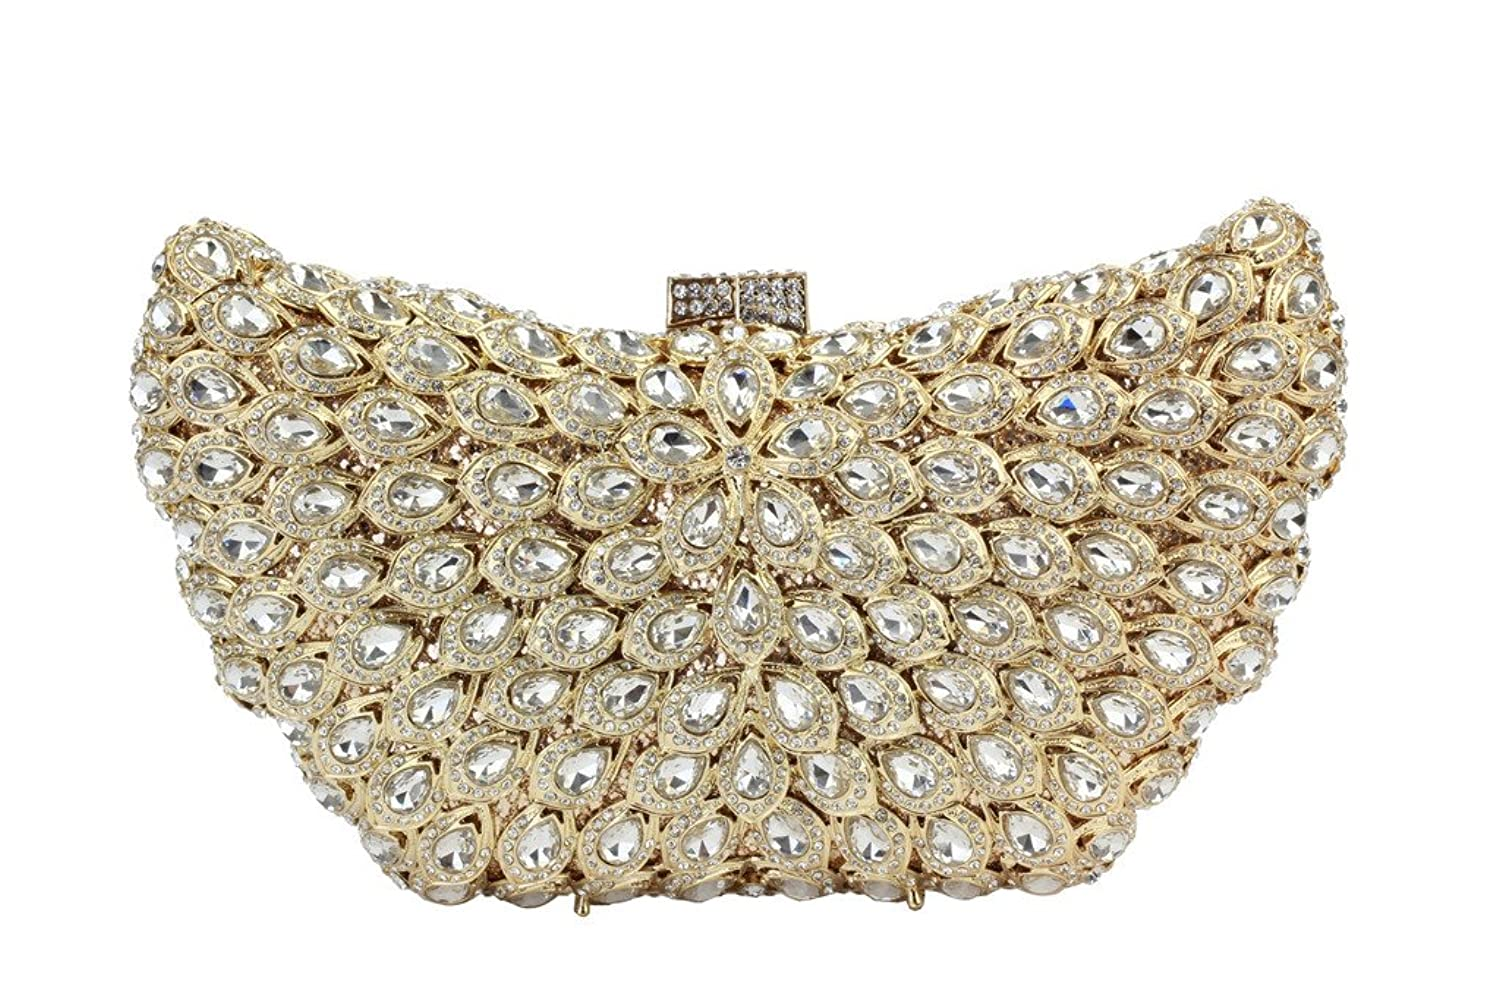 Yilongsheng Ladies Dazzling Evening Bags with Scattering Bright-colored Rhinestones